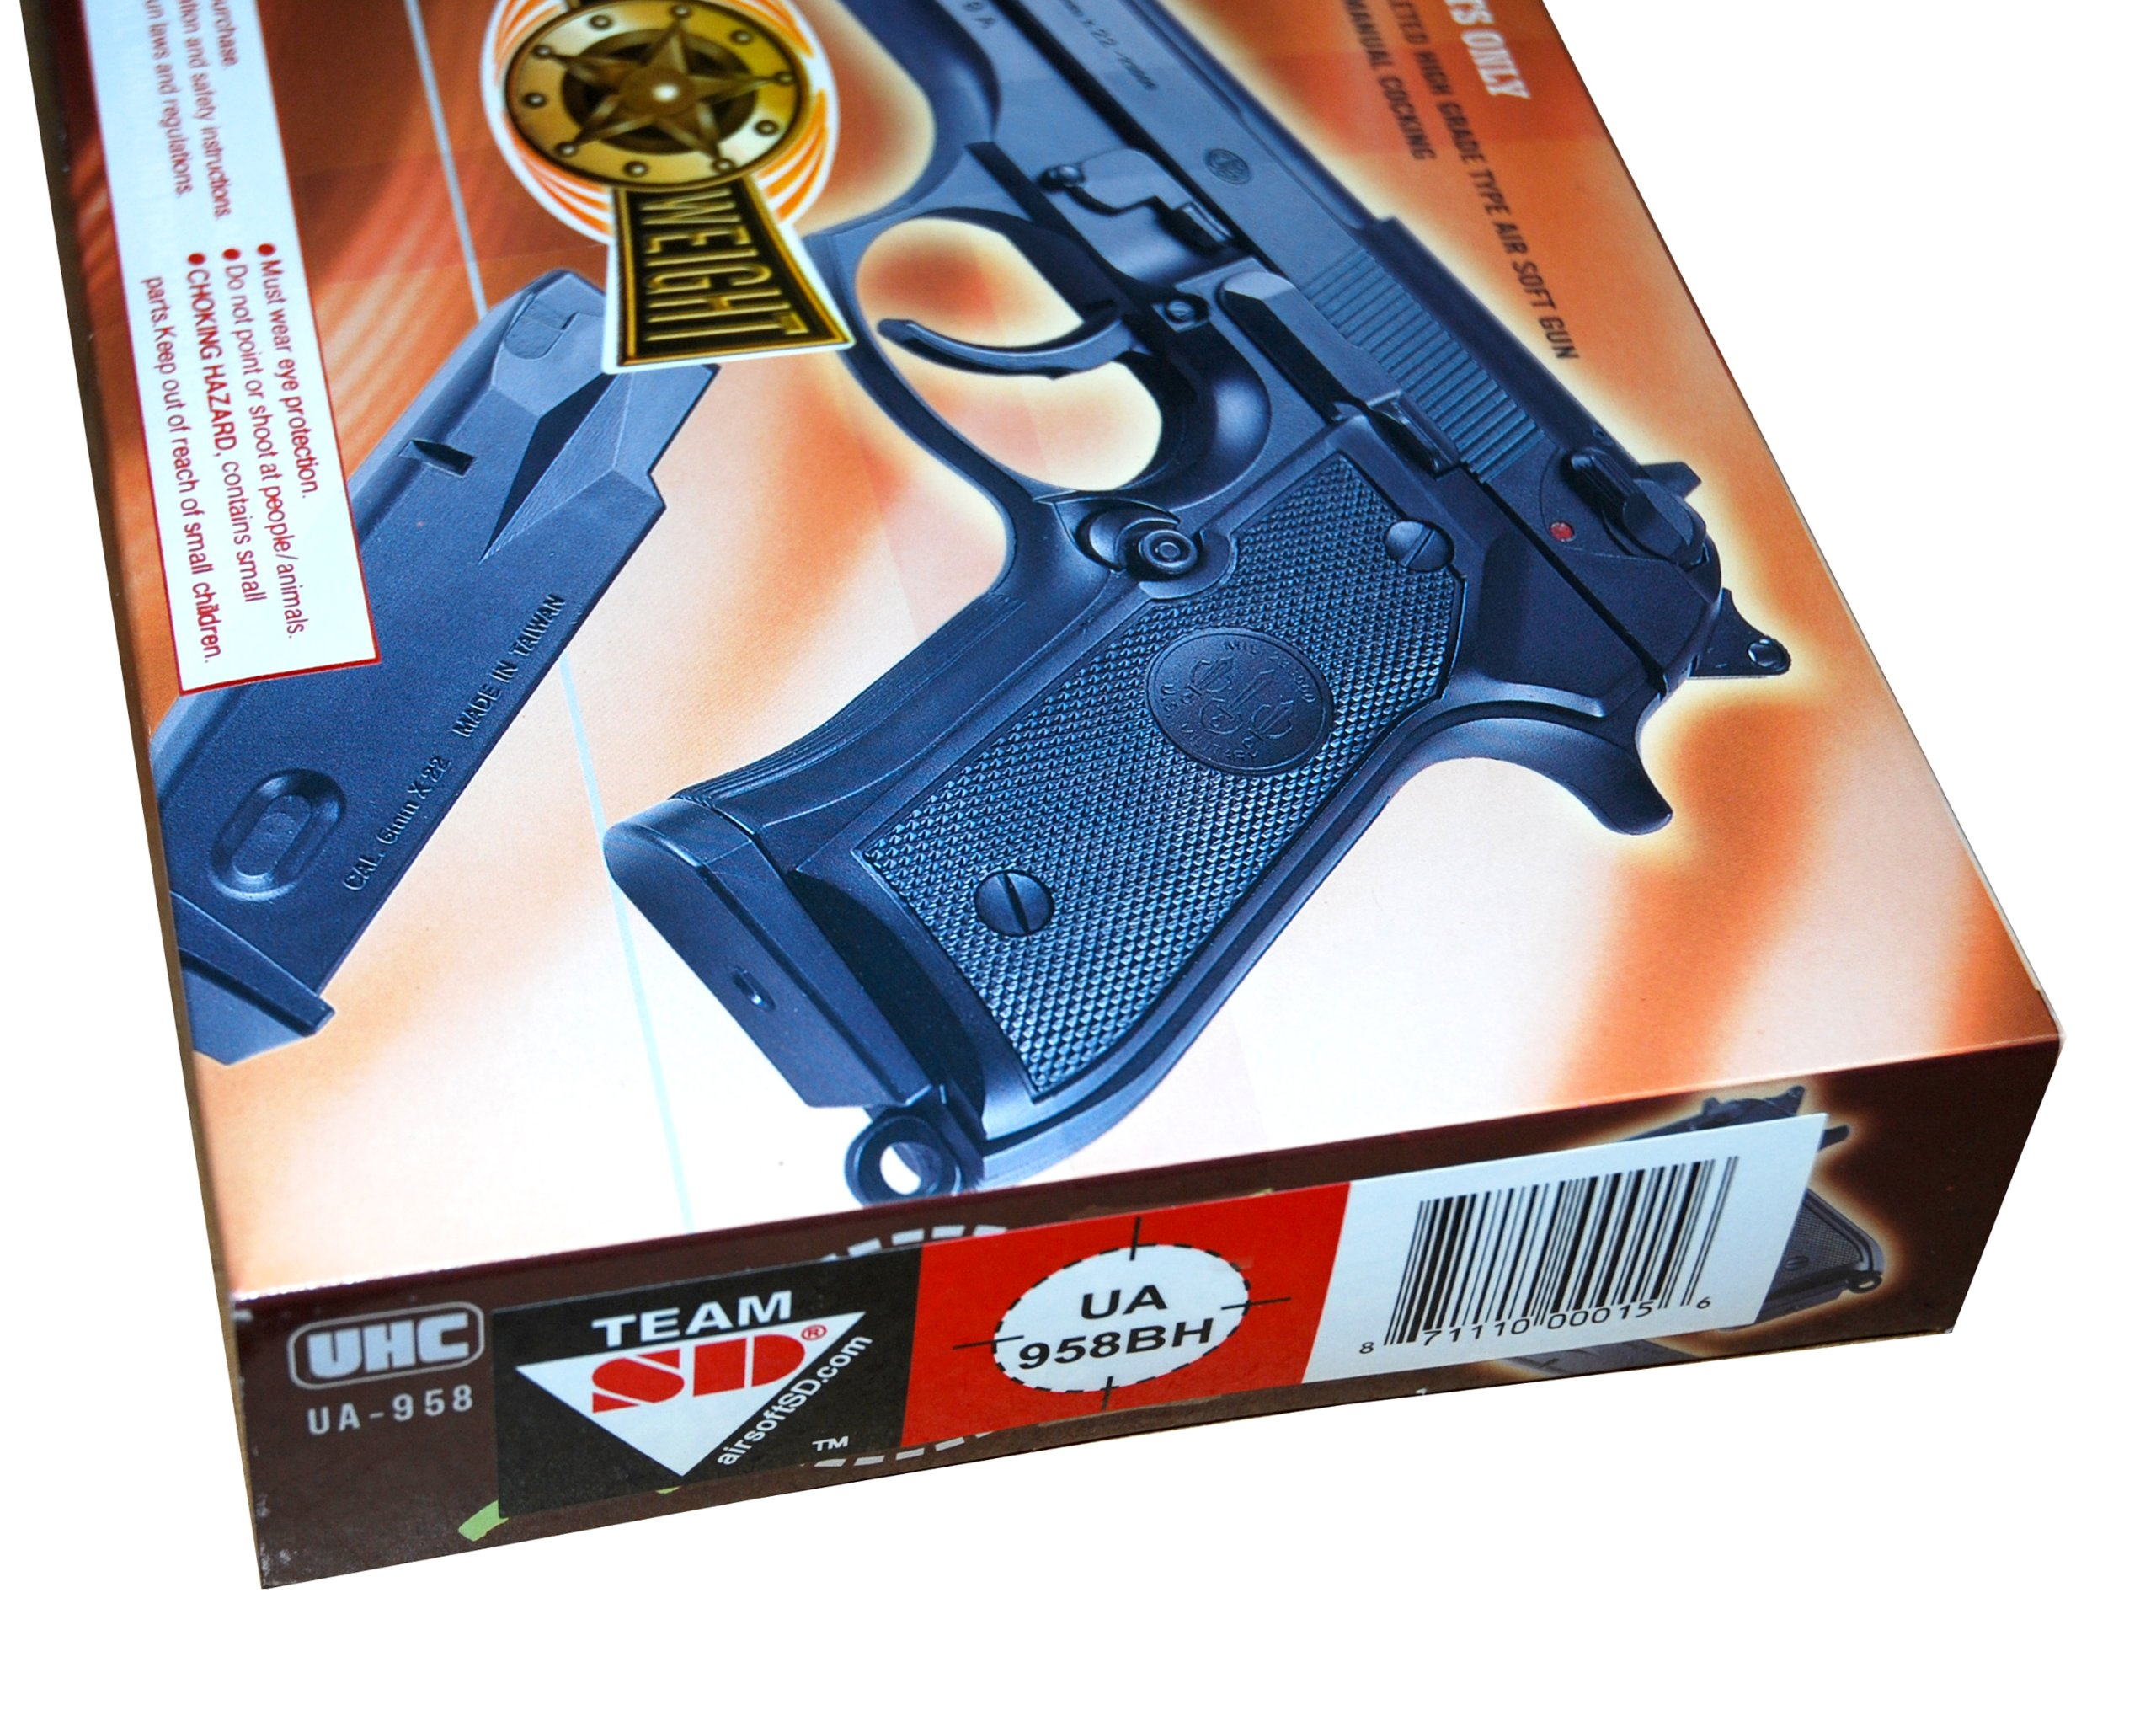 TSD Sports UA937B 4 Inch Spring Powered Airsoft Revolver (Black) by TSD